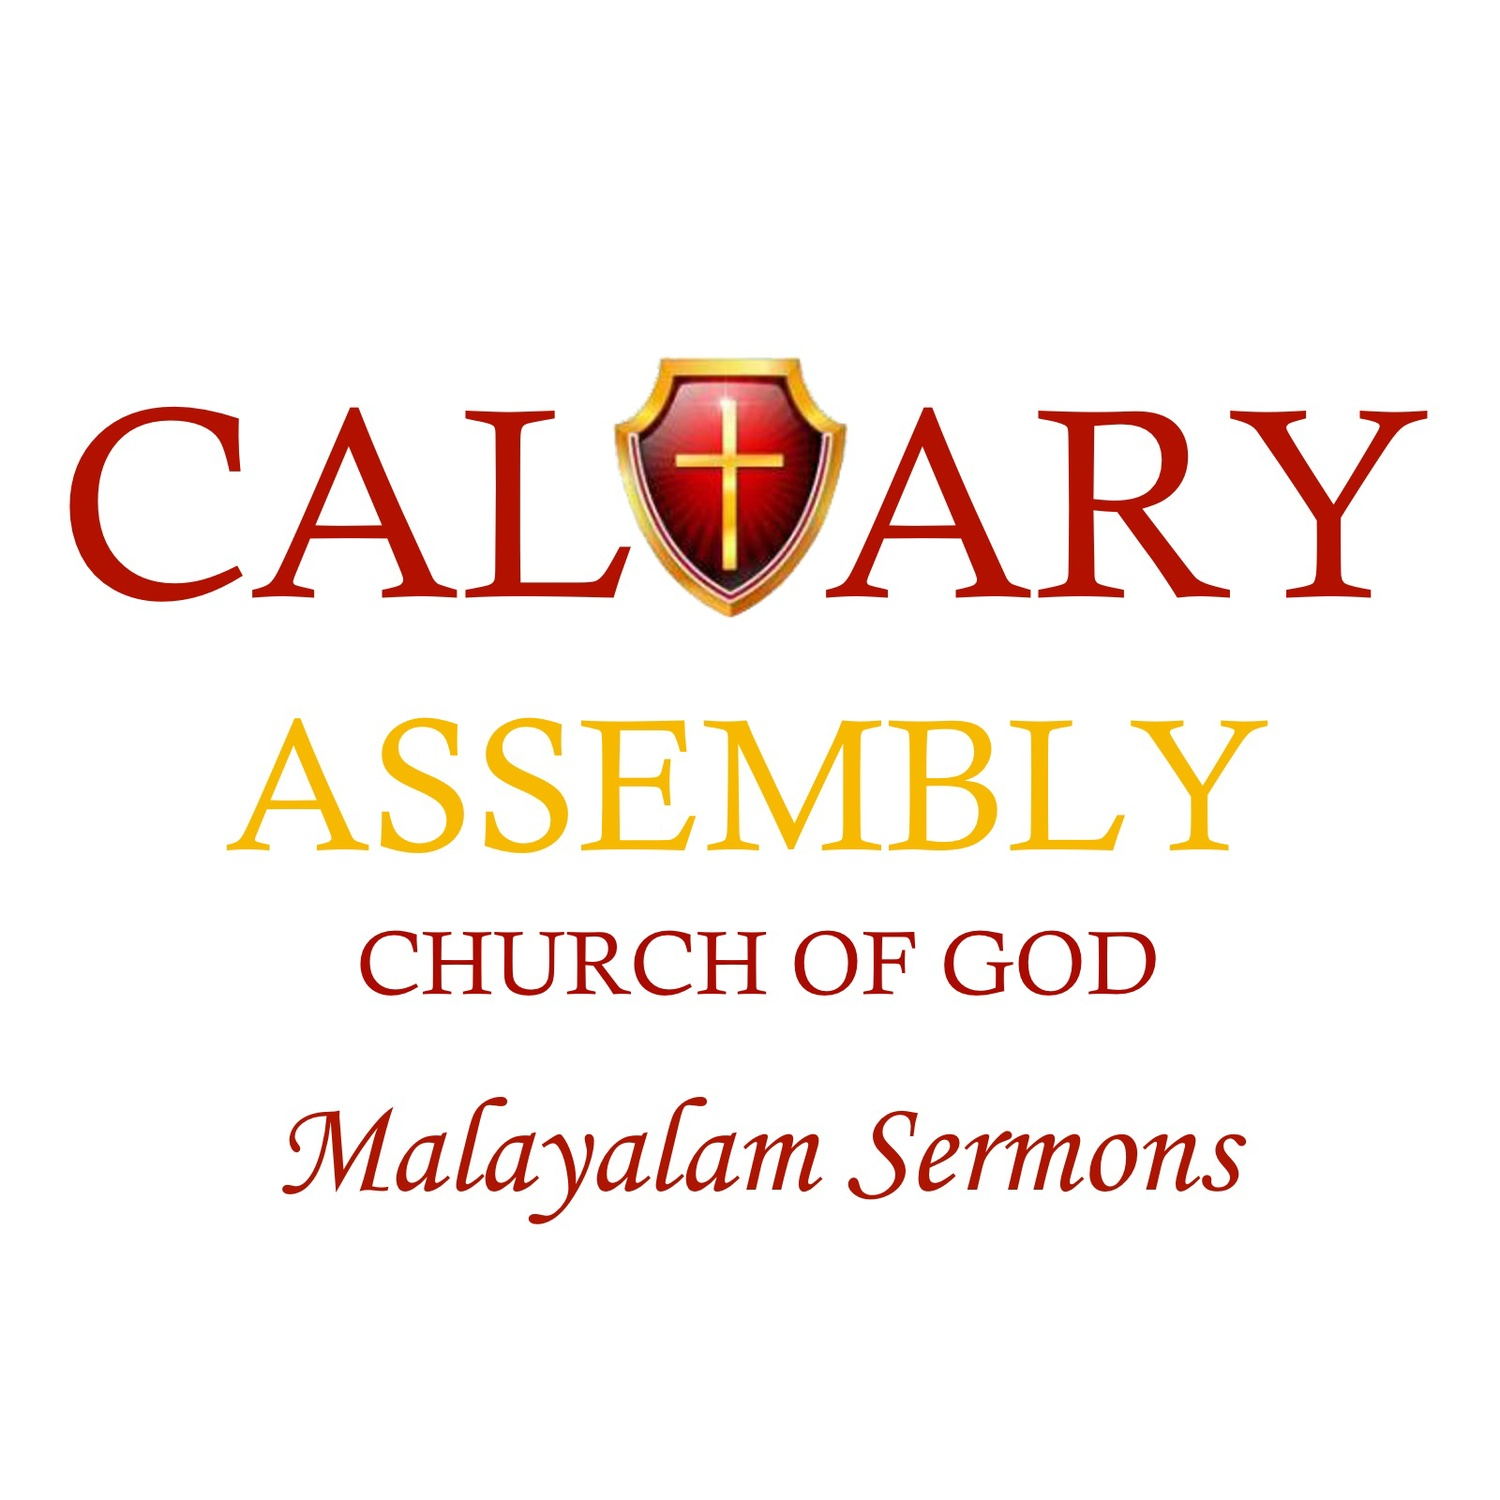 Malayalam Sermons - Calvary Assembly